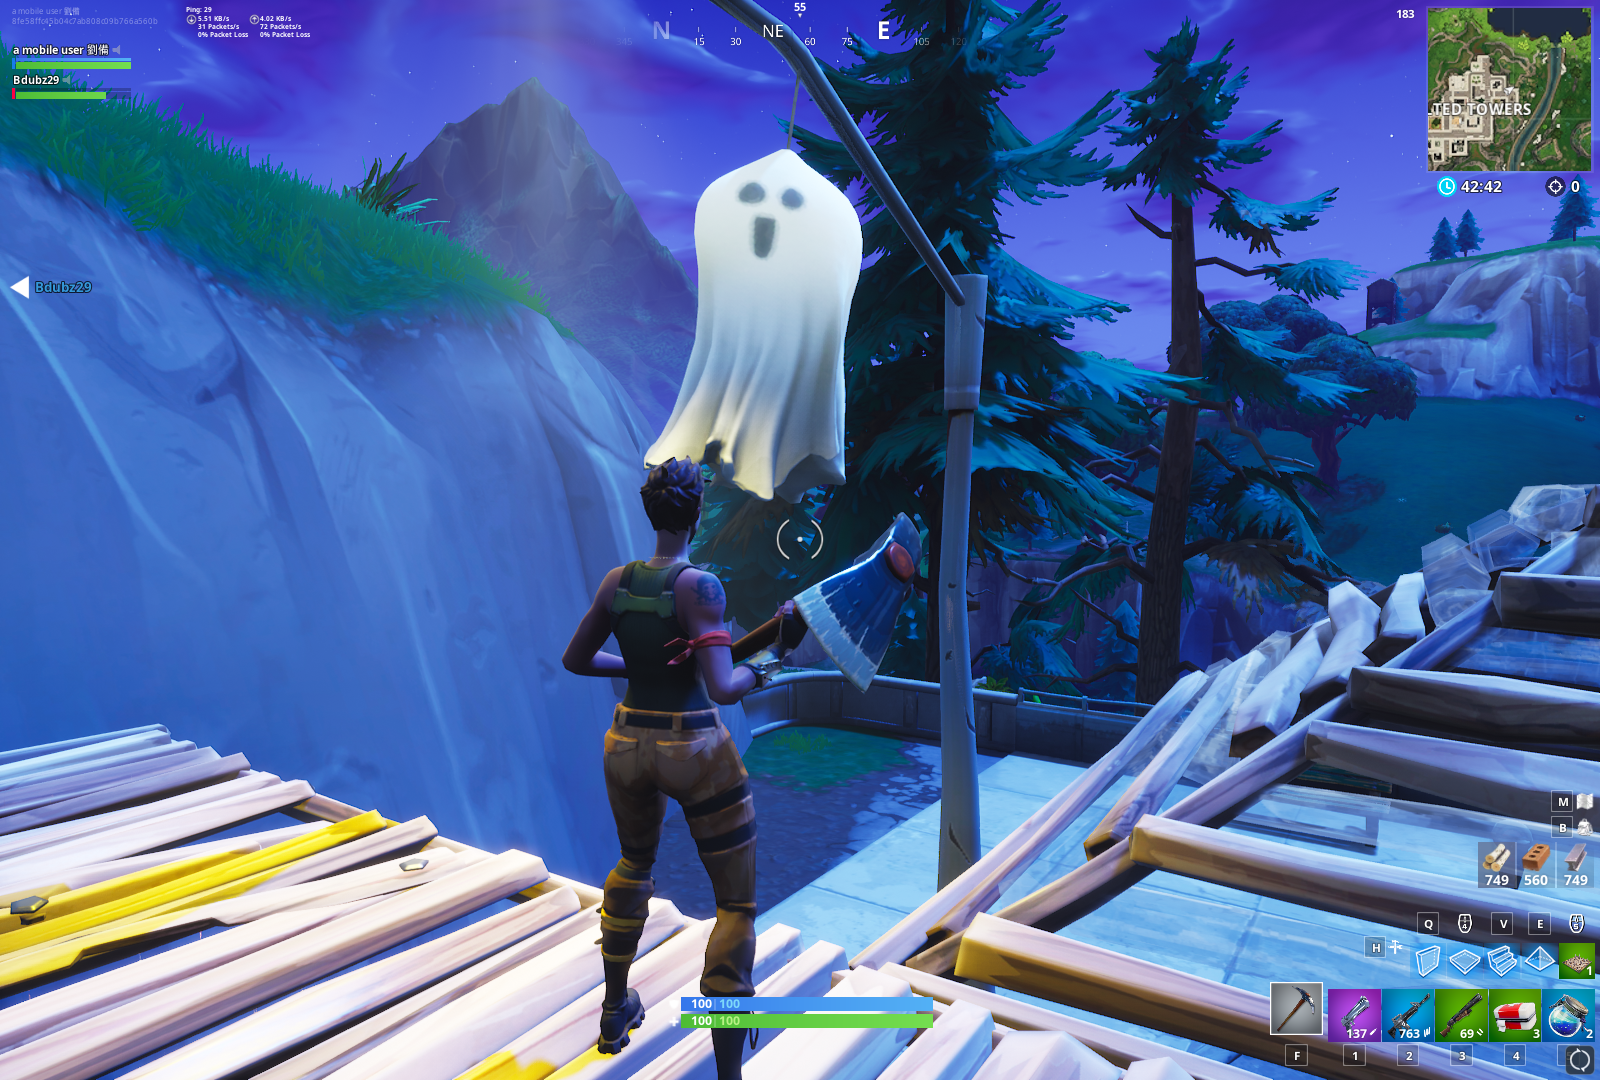 Ghosts in Fortnite